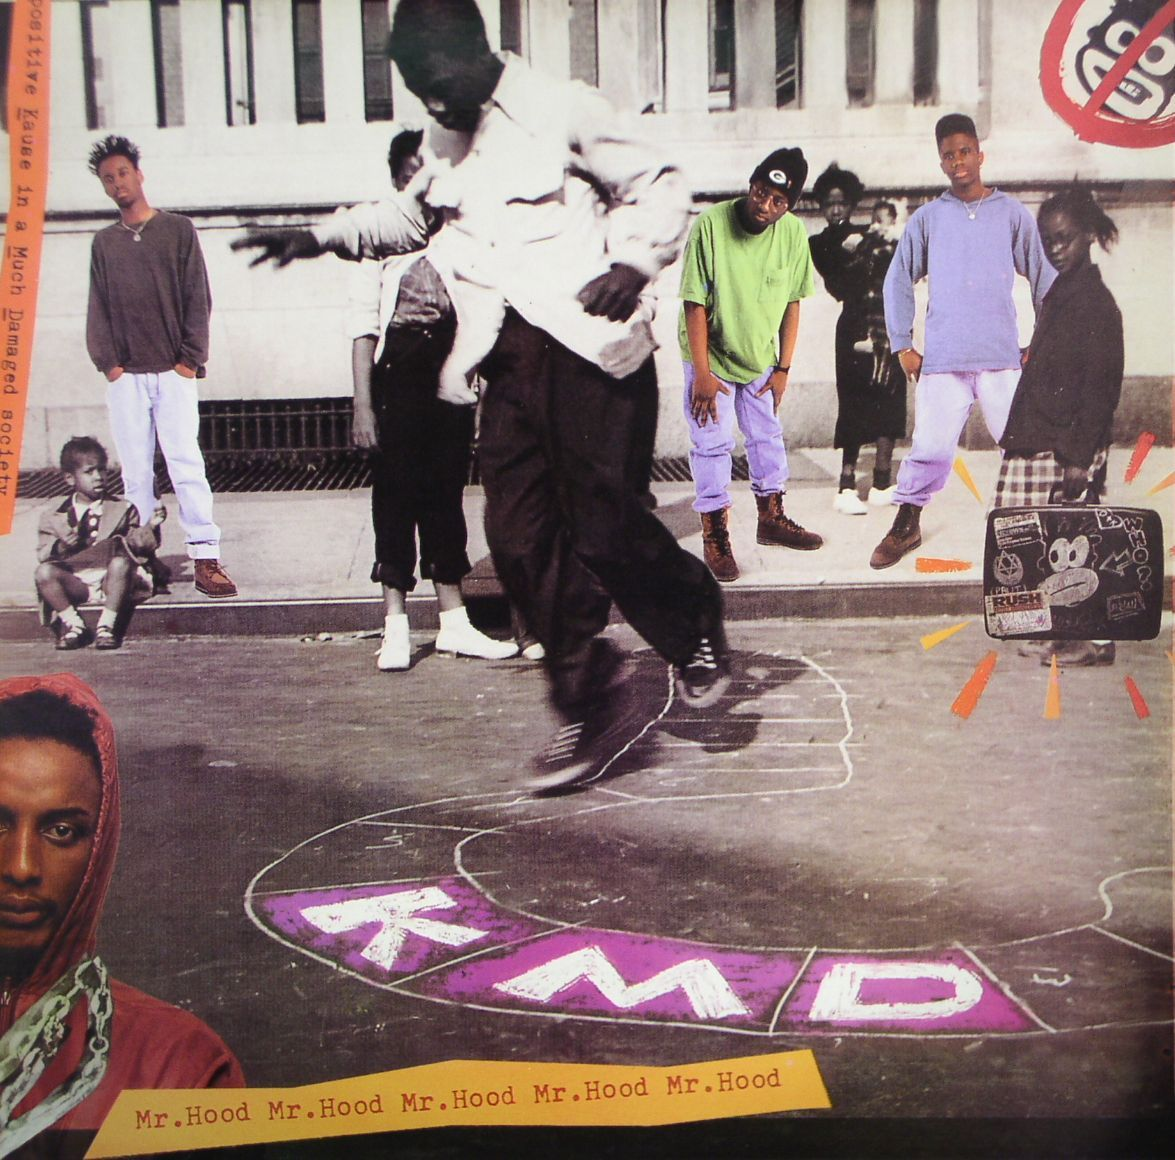 upnorthtrips:  BACK IN THE DAY |5/7/91| KMD releases their debut album, Mr. Hood,  through Elektra Records